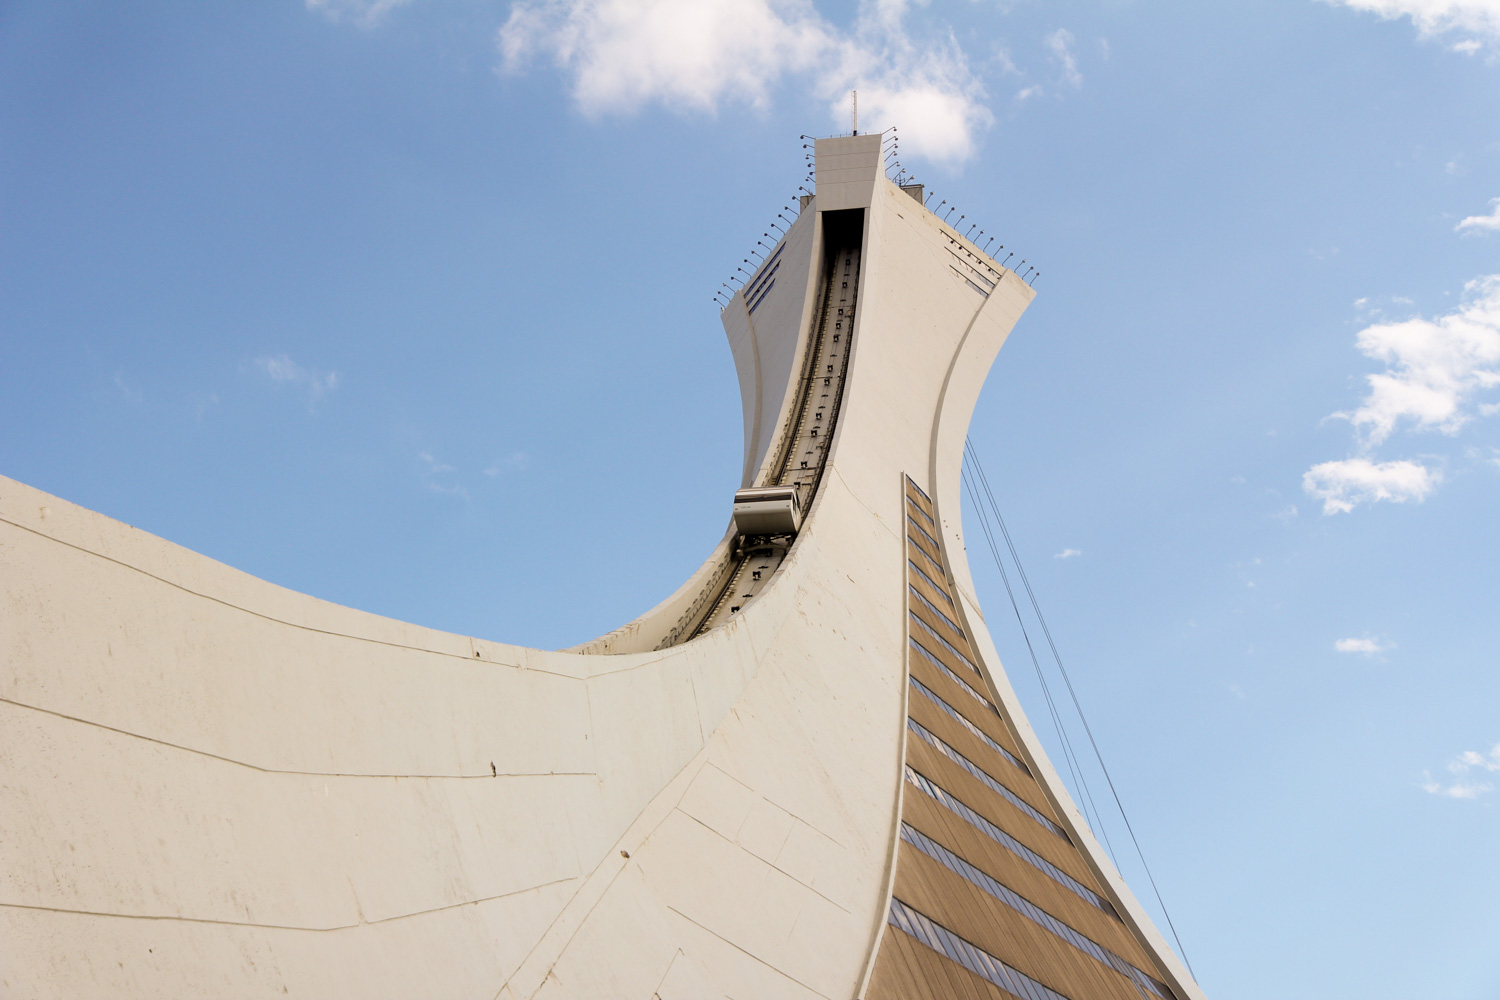 outfit, travel, montreal, stade olympique, olympiastadion, olympic, stadium